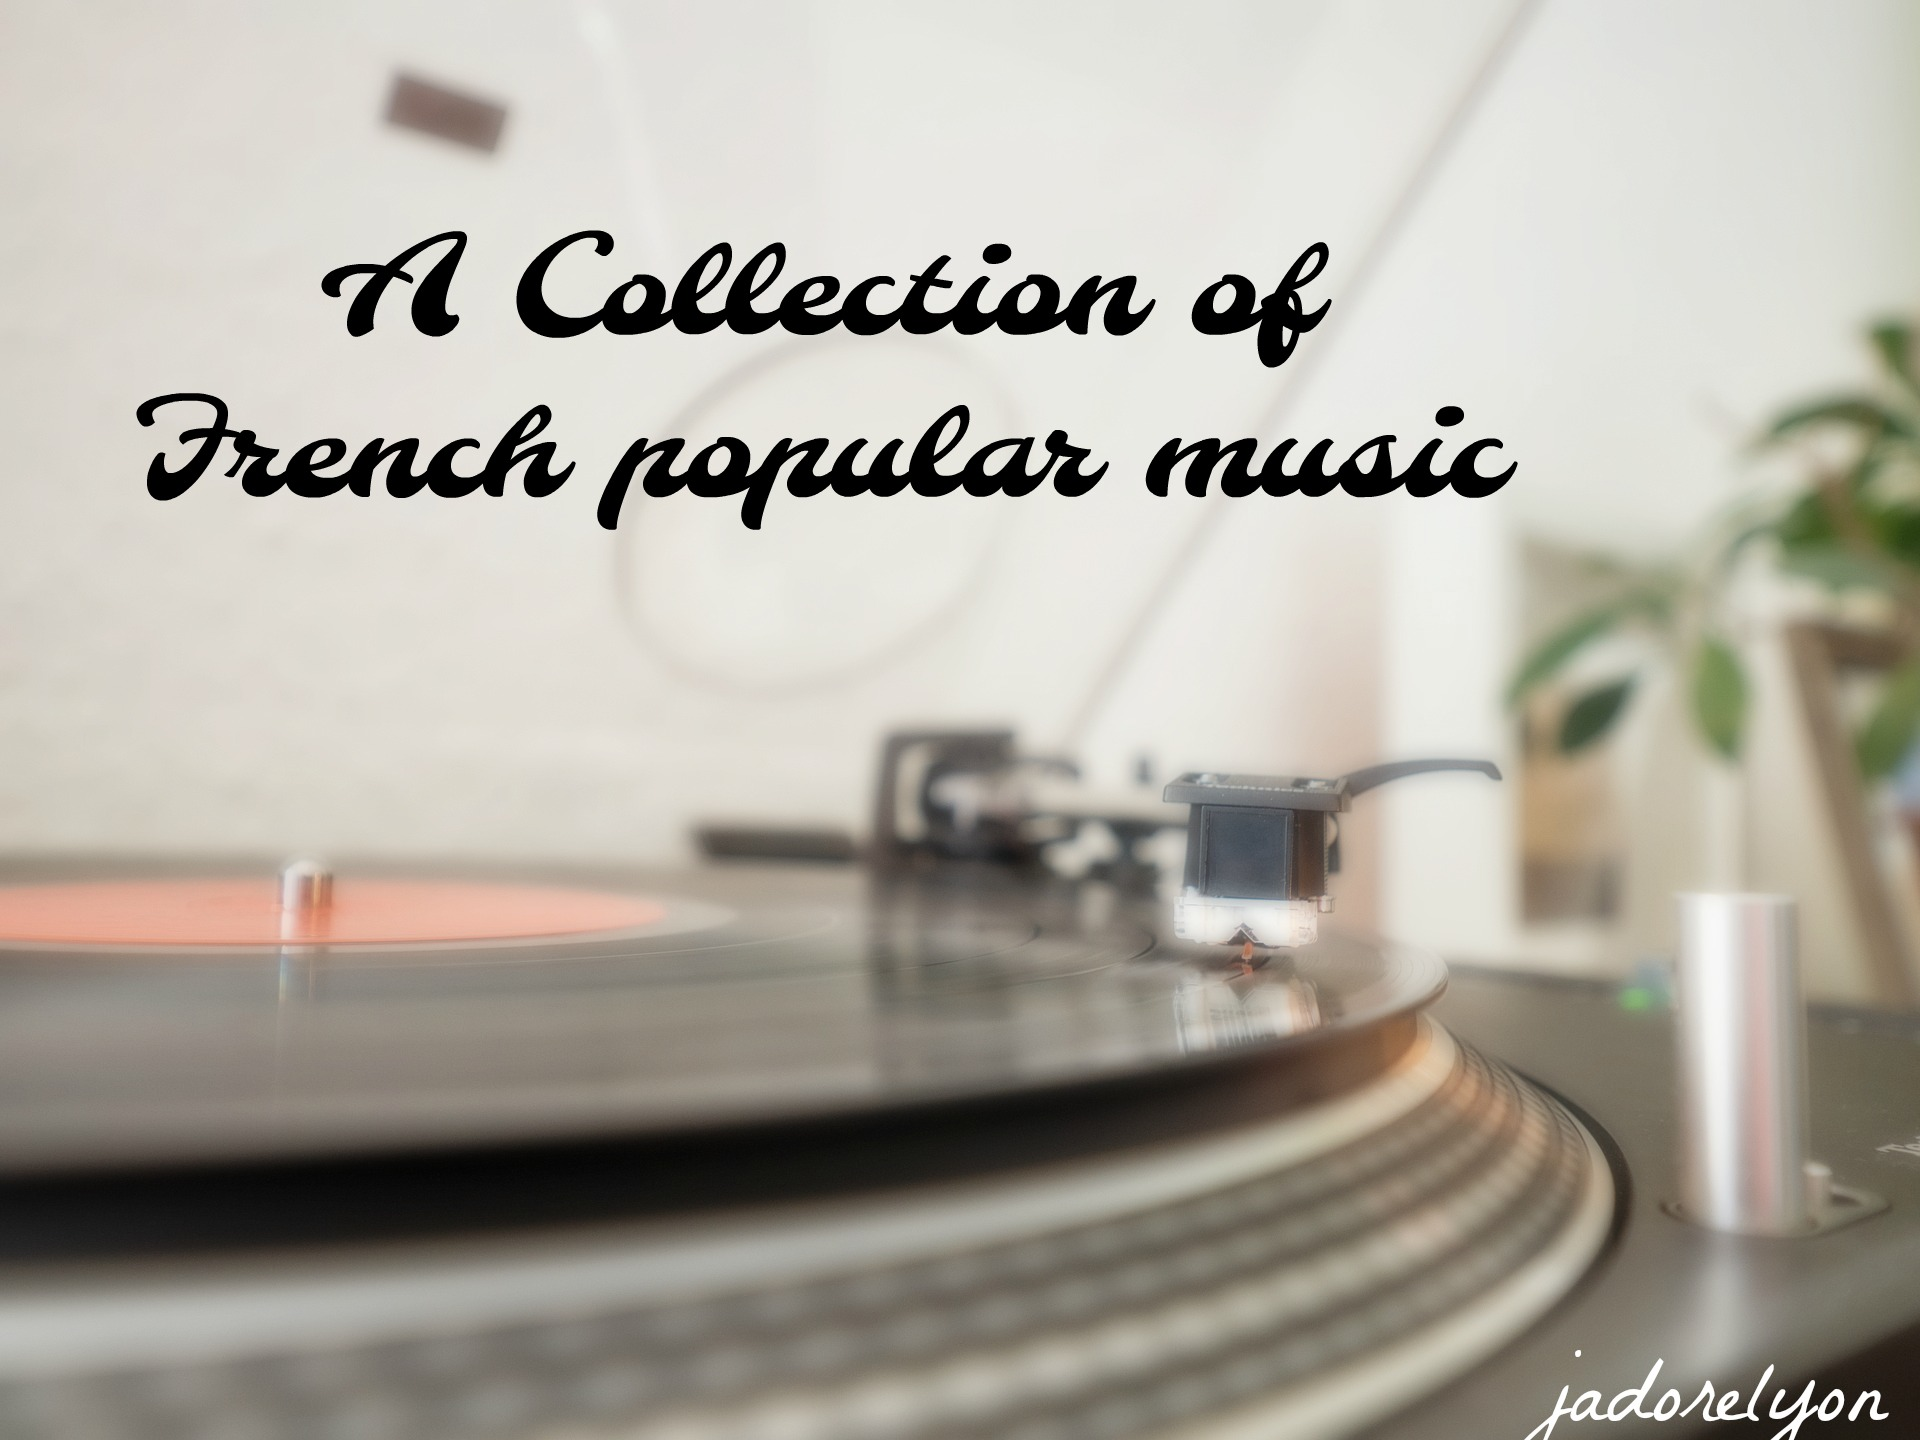 A collection of the best French Music